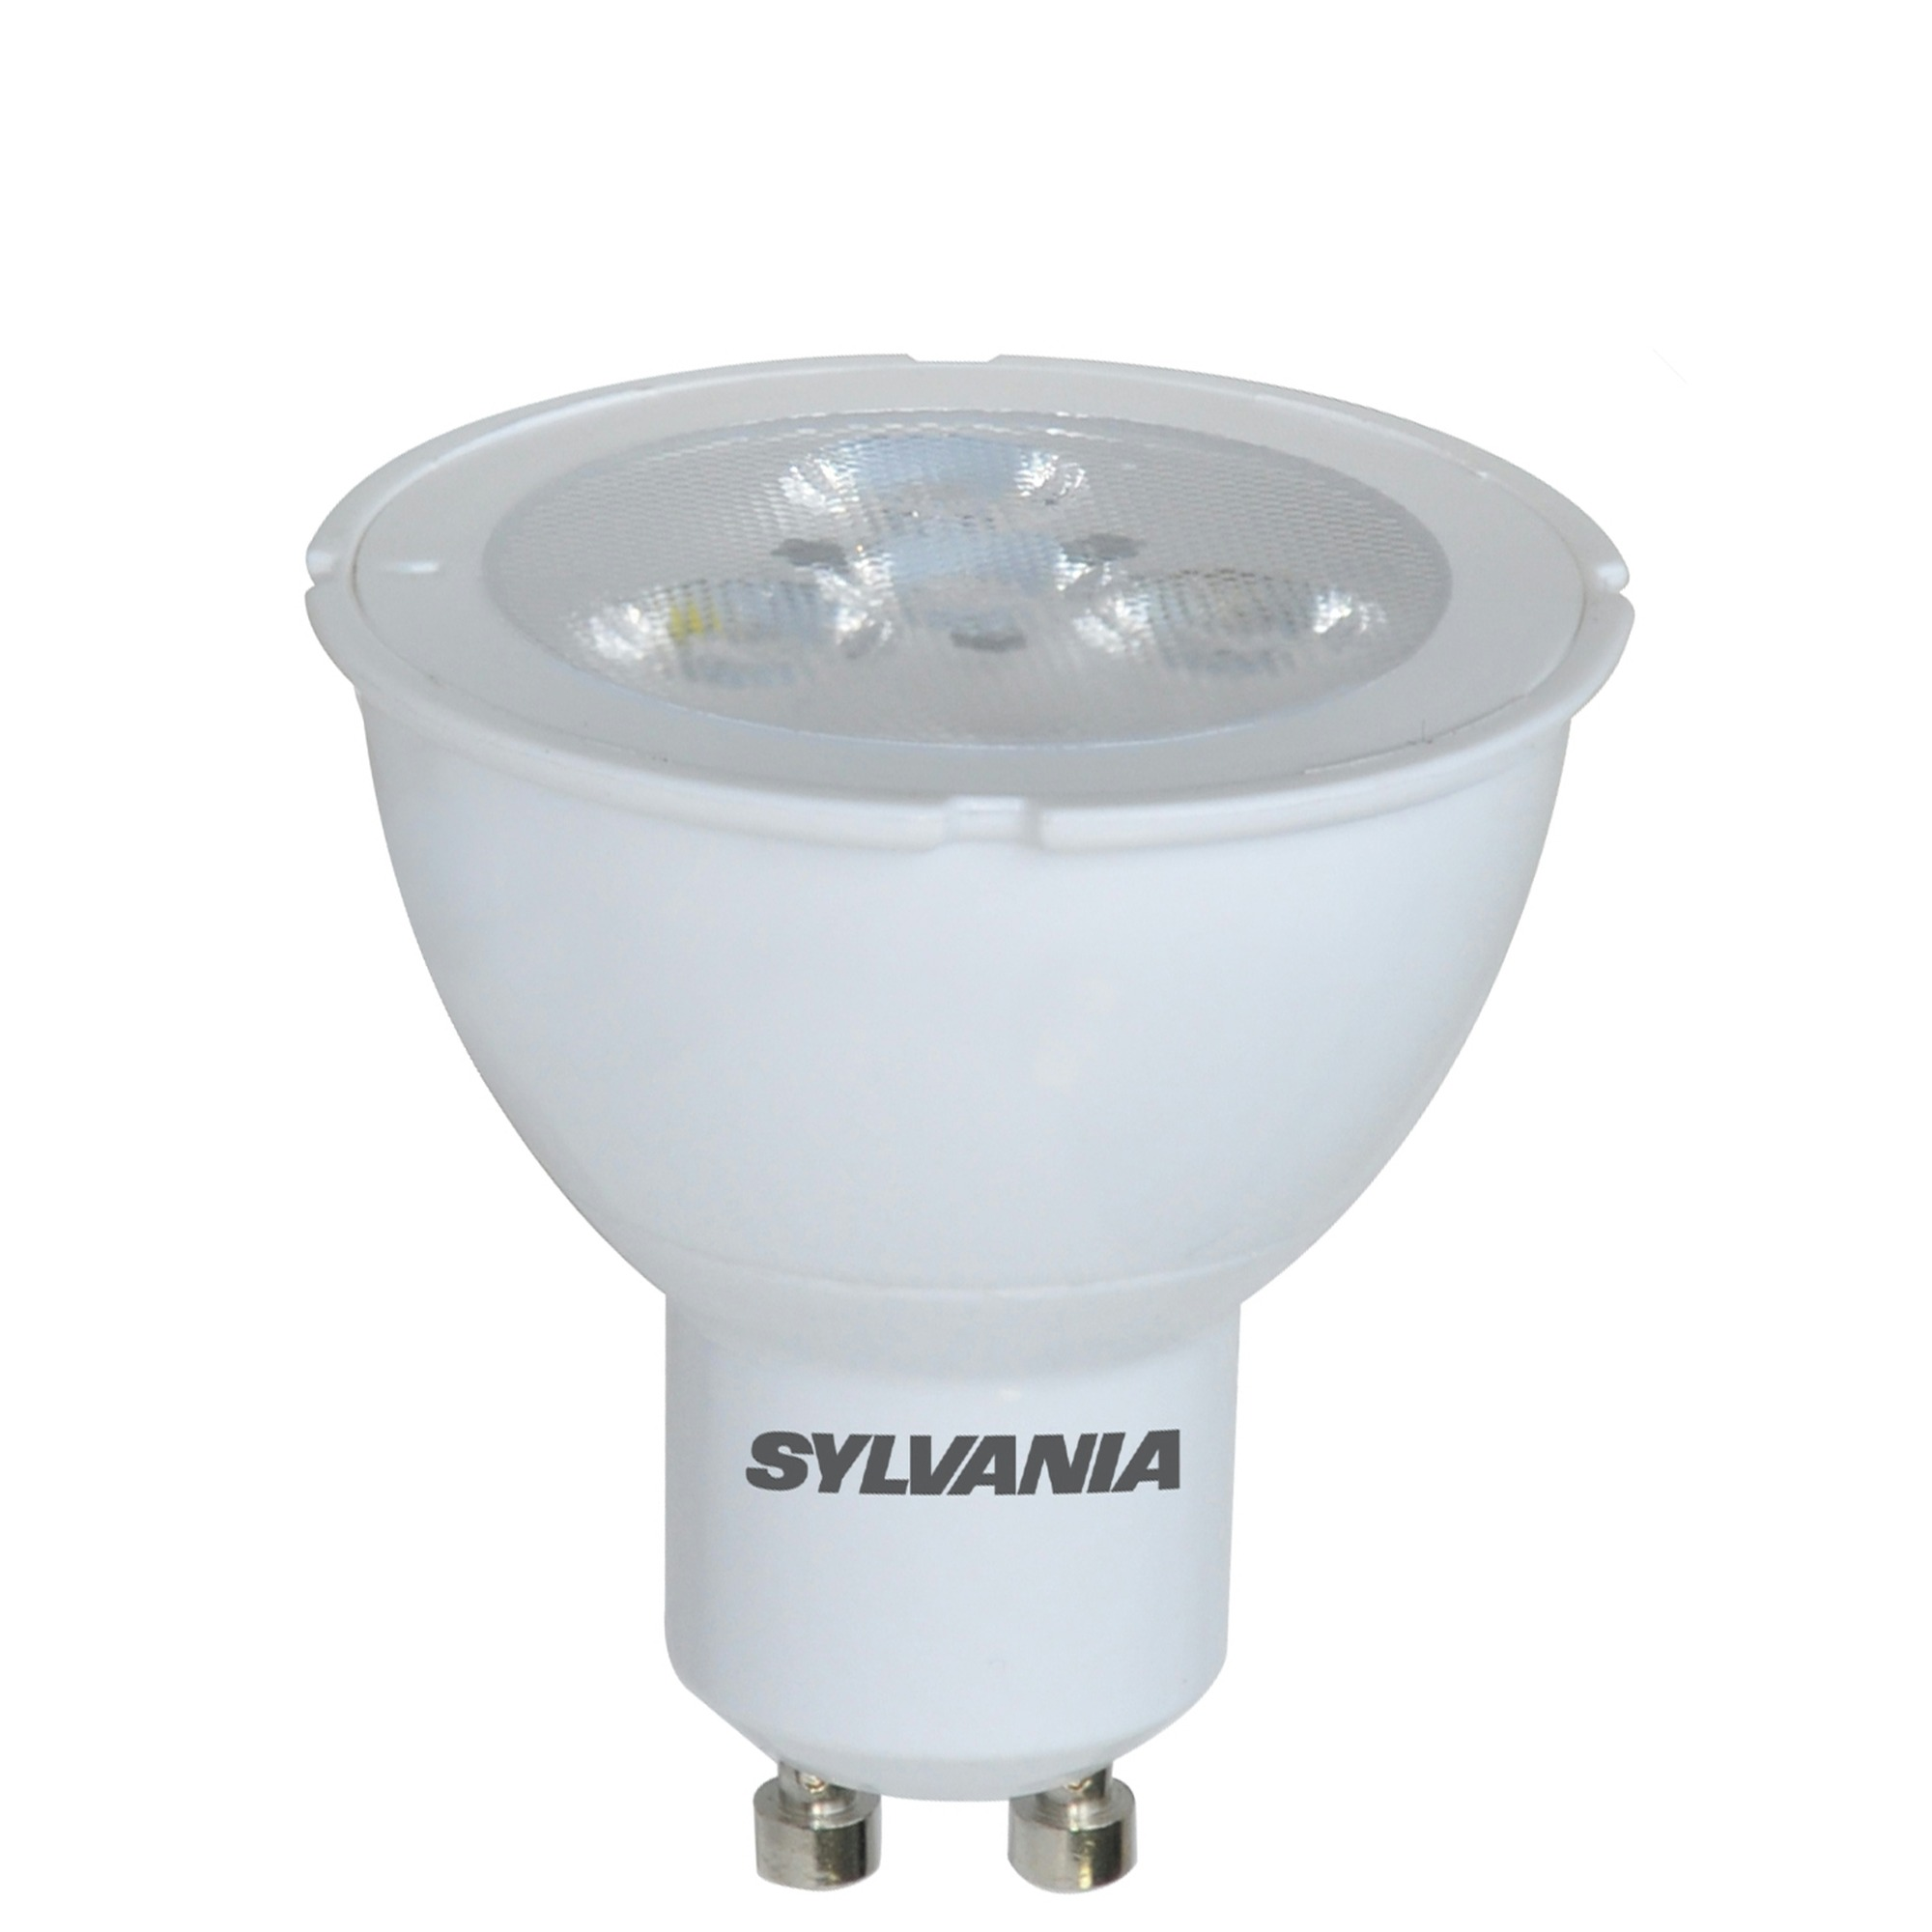 sylvania led spot gu10 345 lumen 5w 50w cool white led lampen lampen verlichting. Black Bedroom Furniture Sets. Home Design Ideas